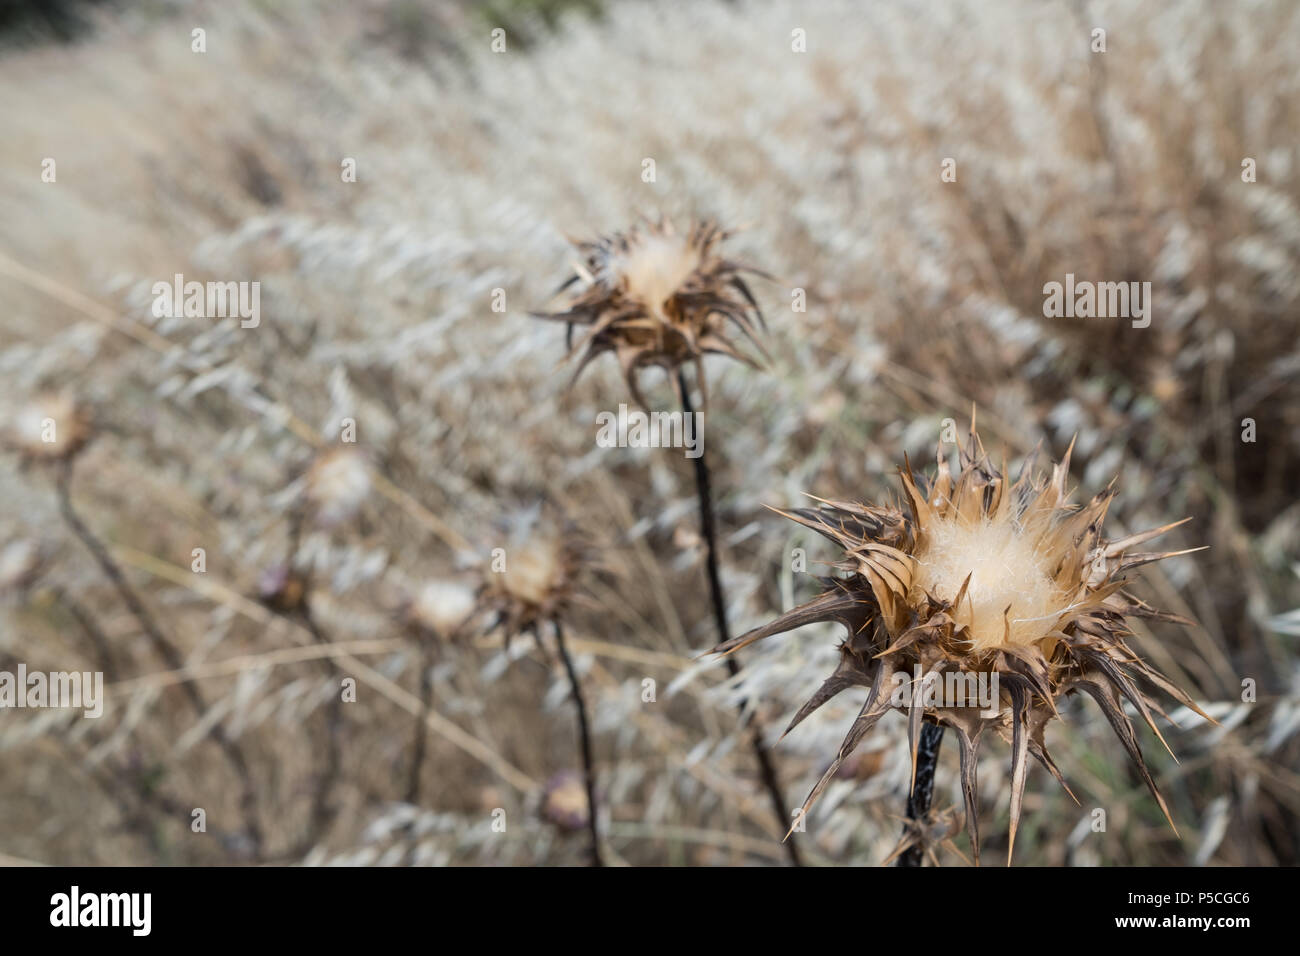 Thorny Thistles drying out in the Hot Climate of the Greek Summer in a Meadow. Saronida, Greece. Stock Photo